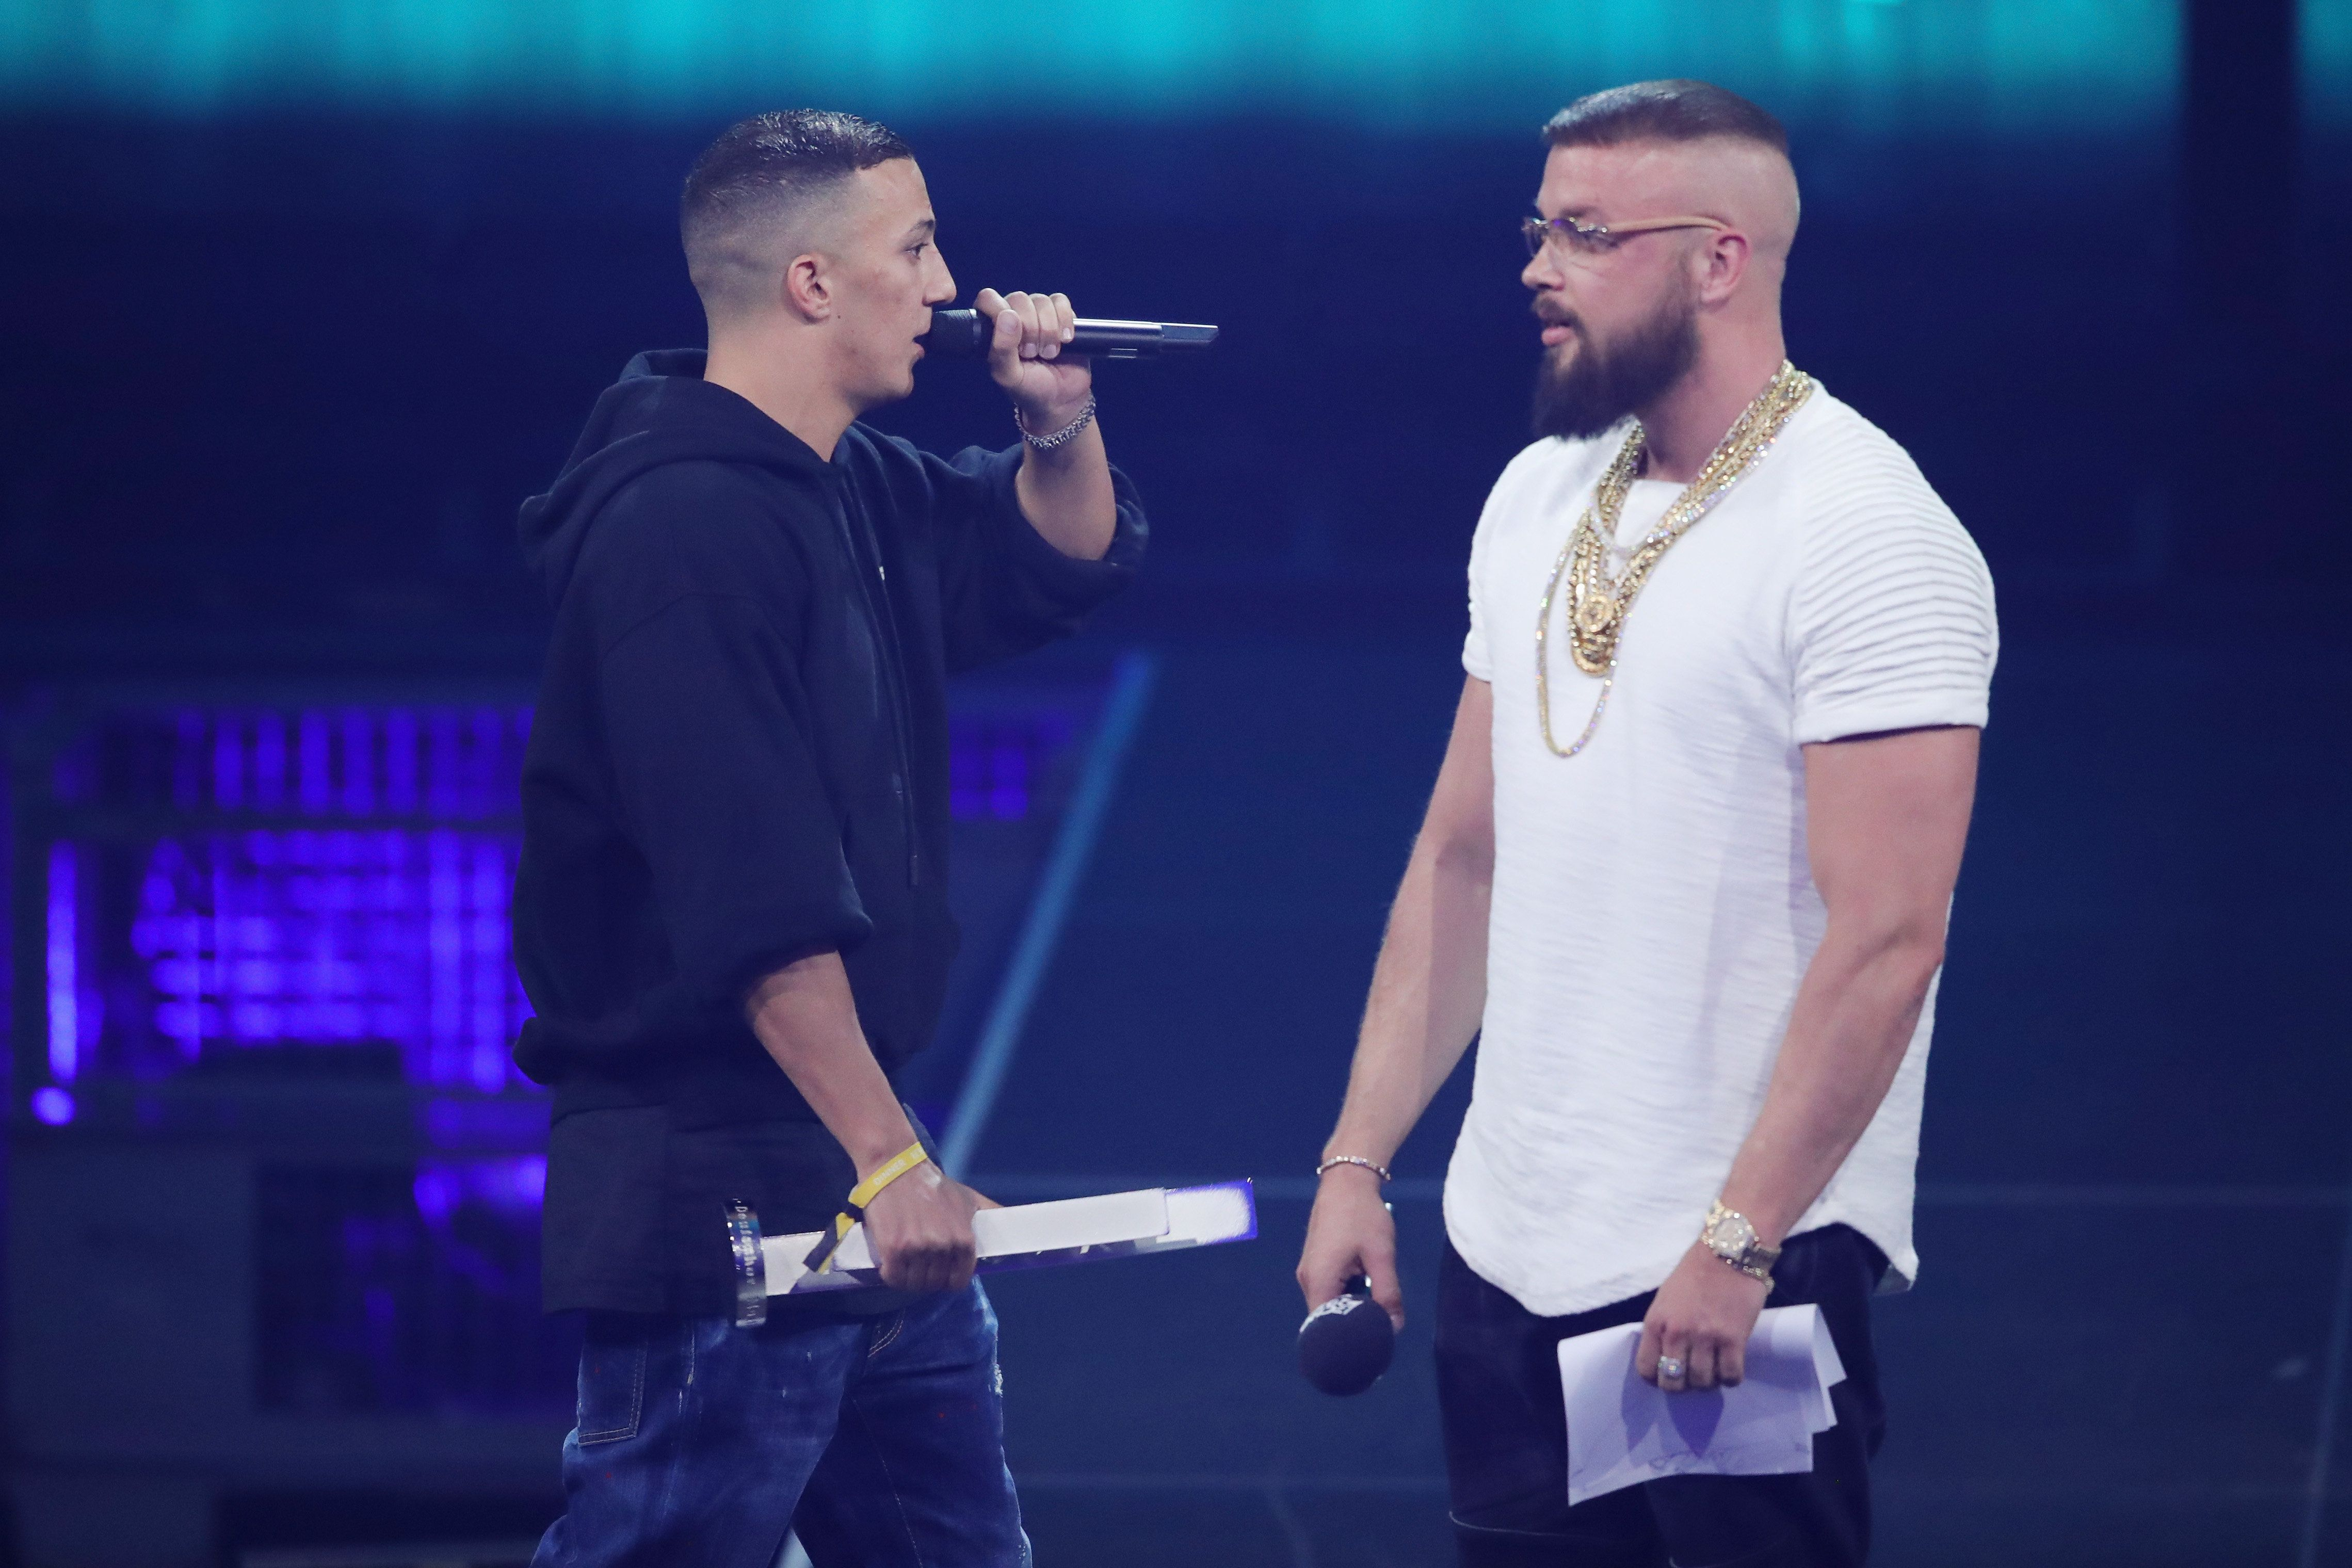 Germany Confronts Rising Anti-Semitism After Rap Duo With Holocaust Lyrics Wins